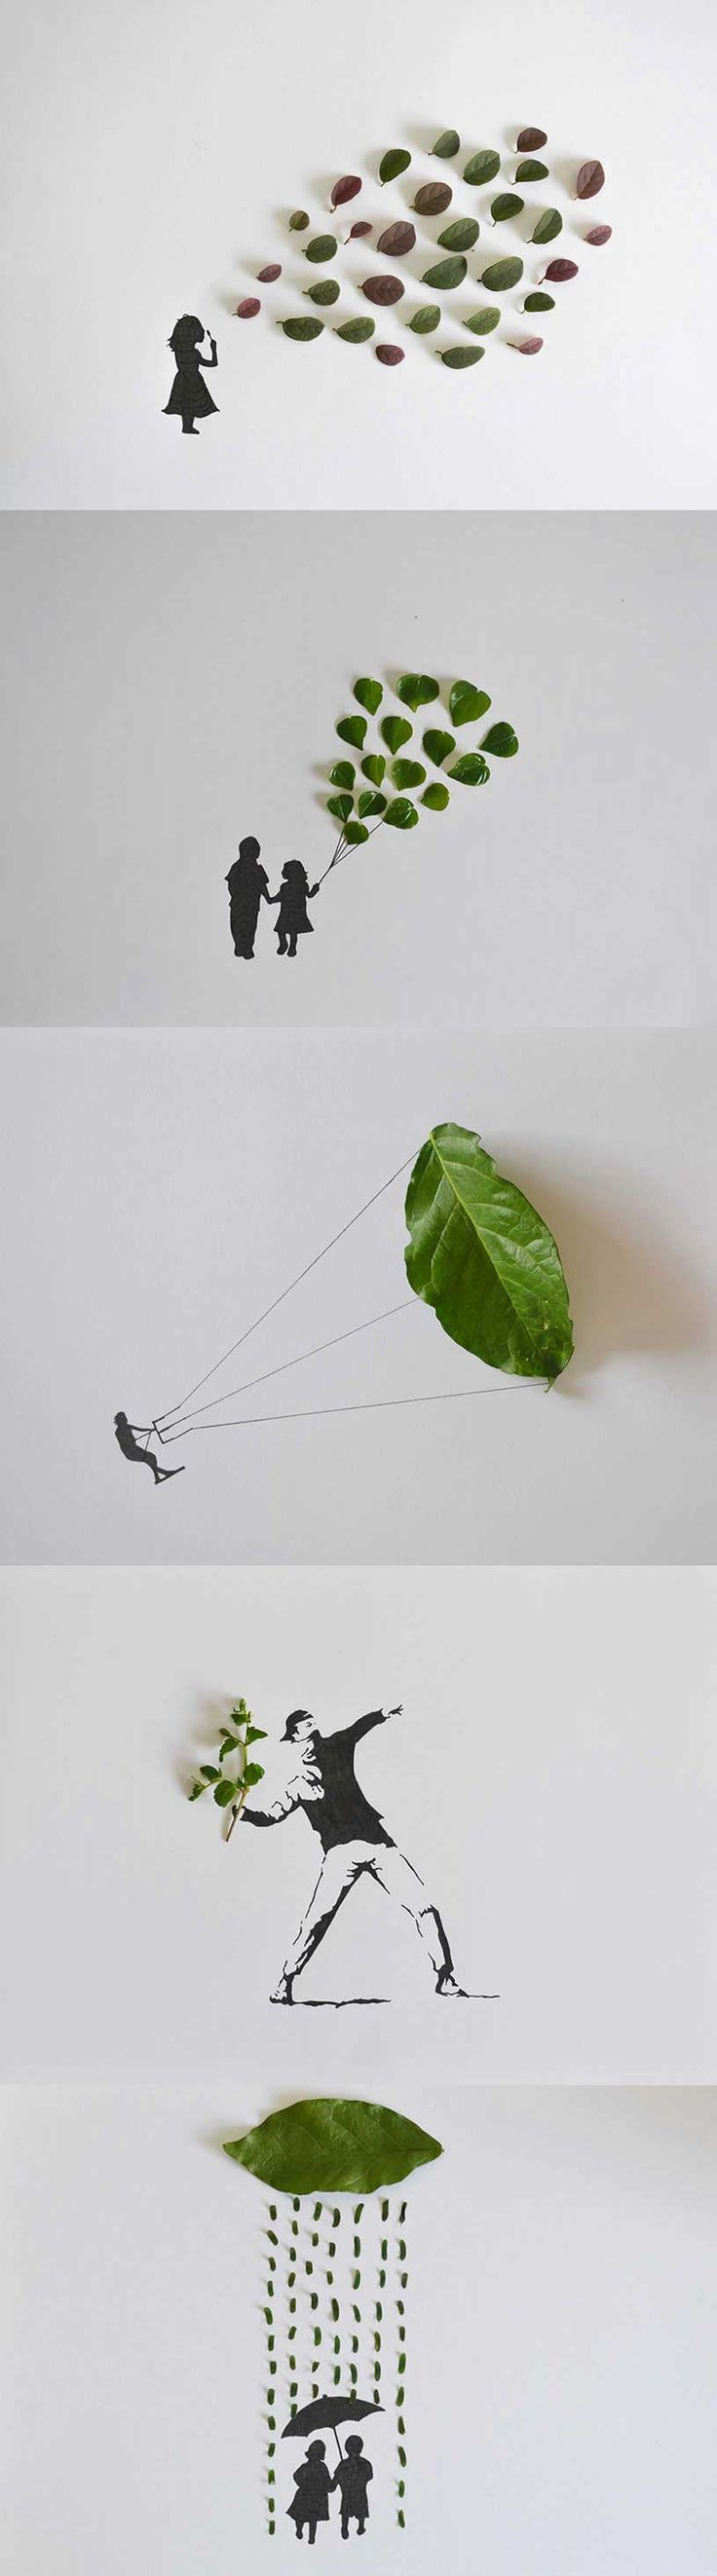 Leaf Art by Malaysian graphic designer Tang Chiew Ling